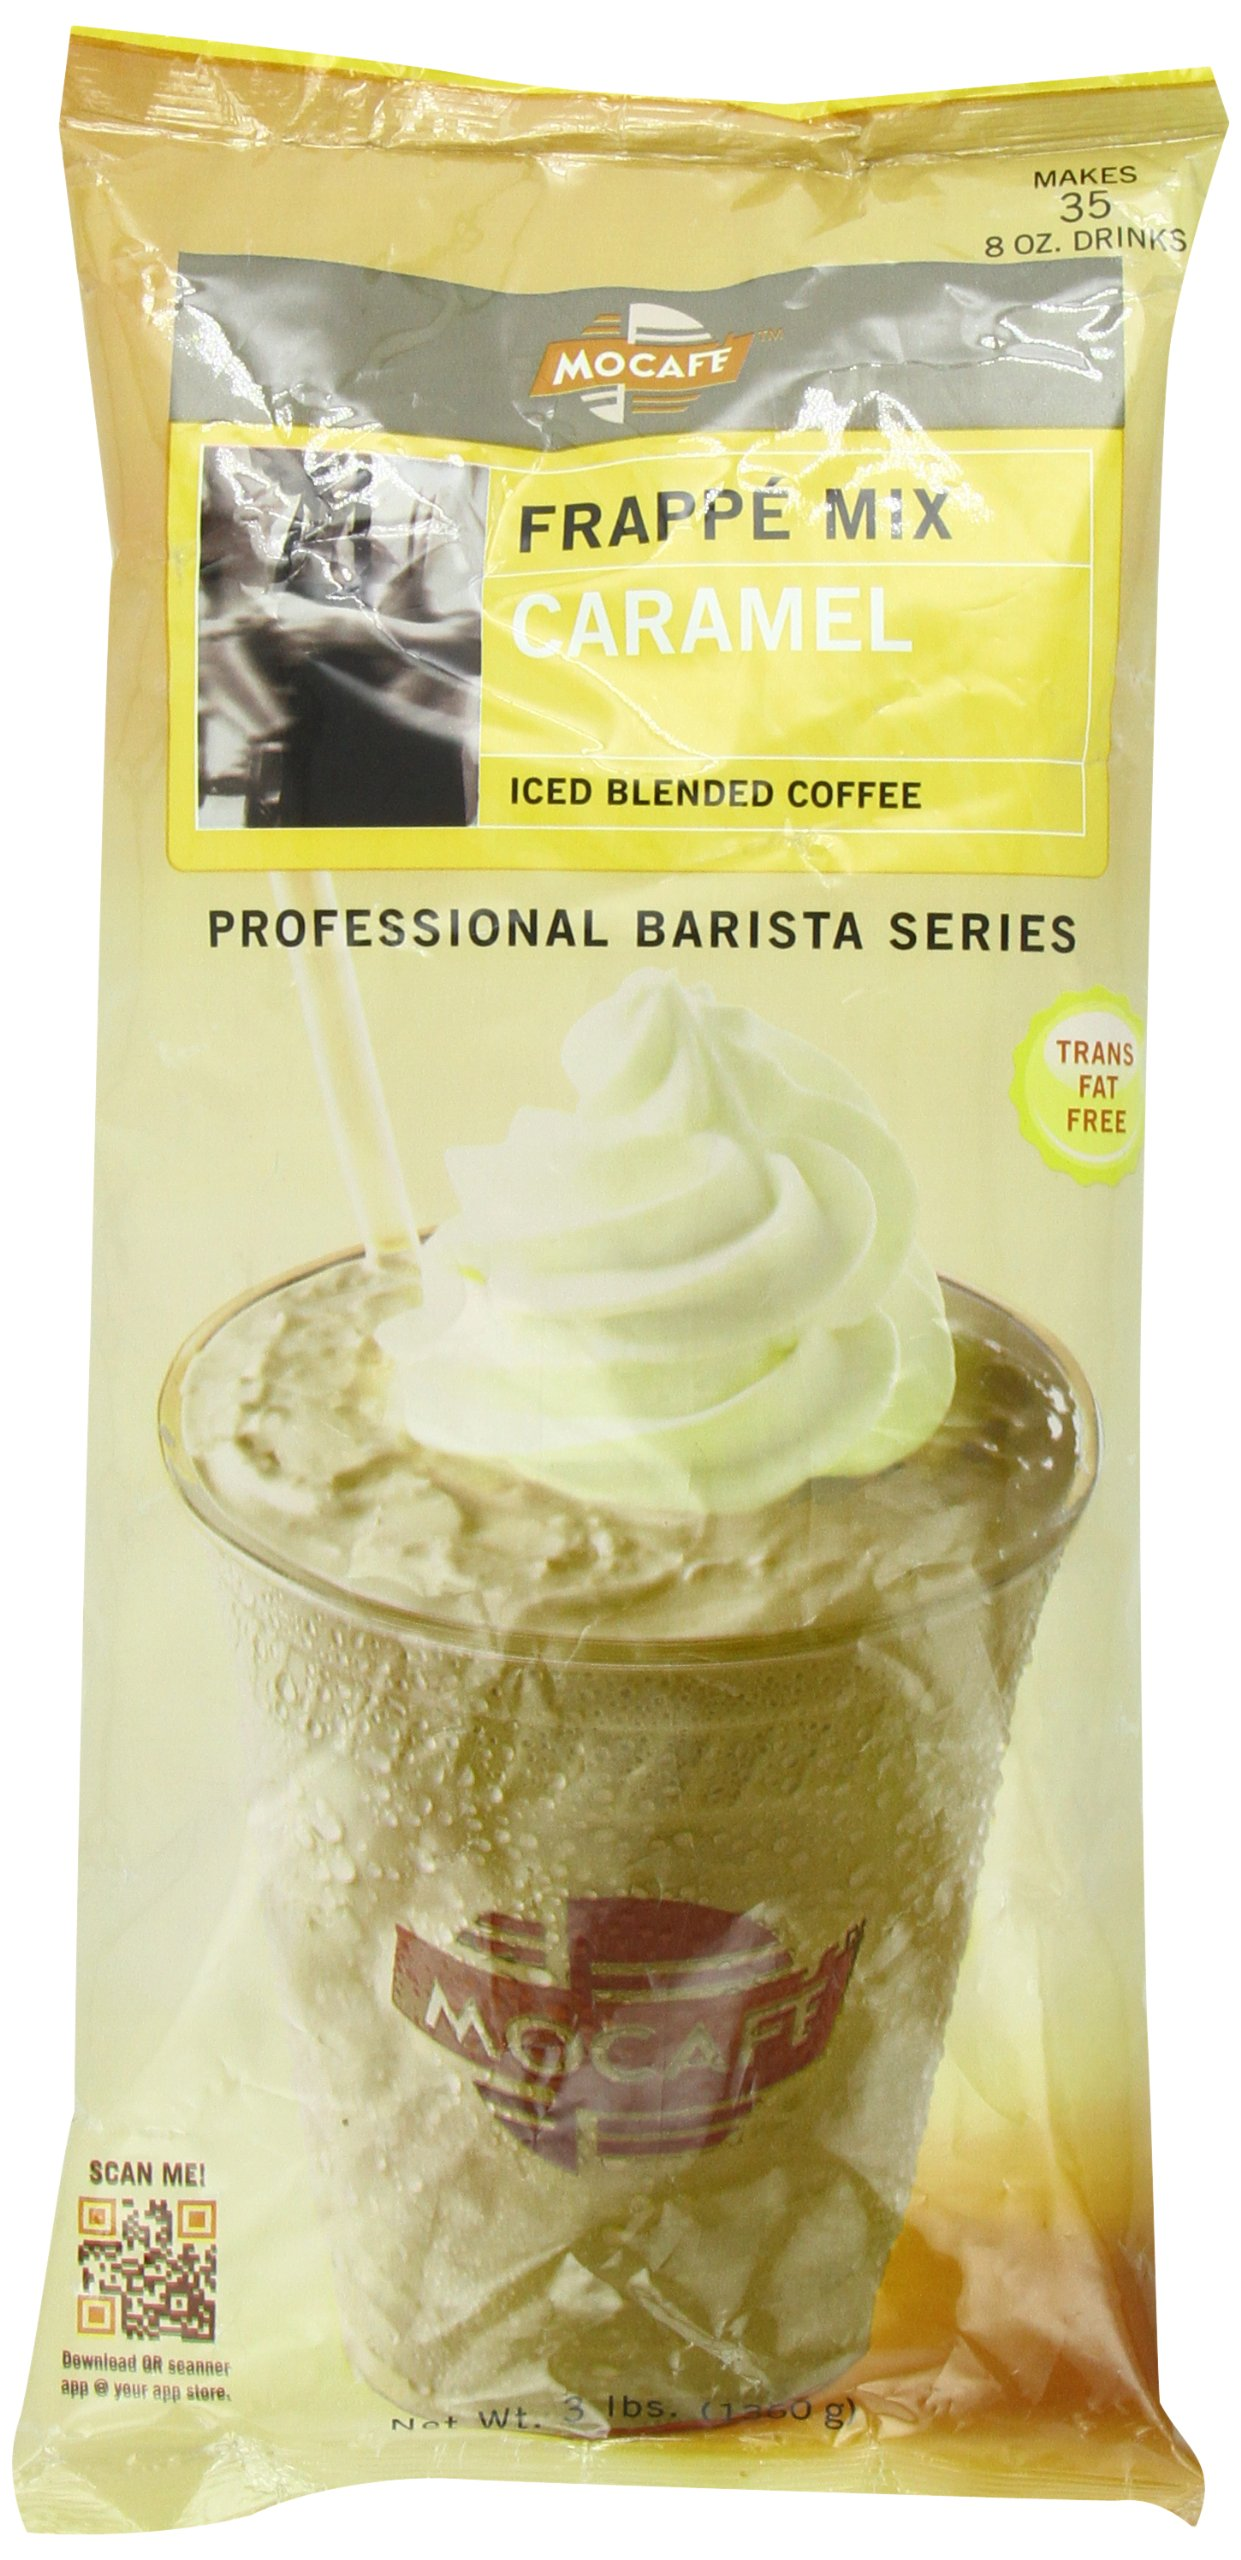 To acquire Frappuccino Newsstarbucks signature style series giveaway picture trends